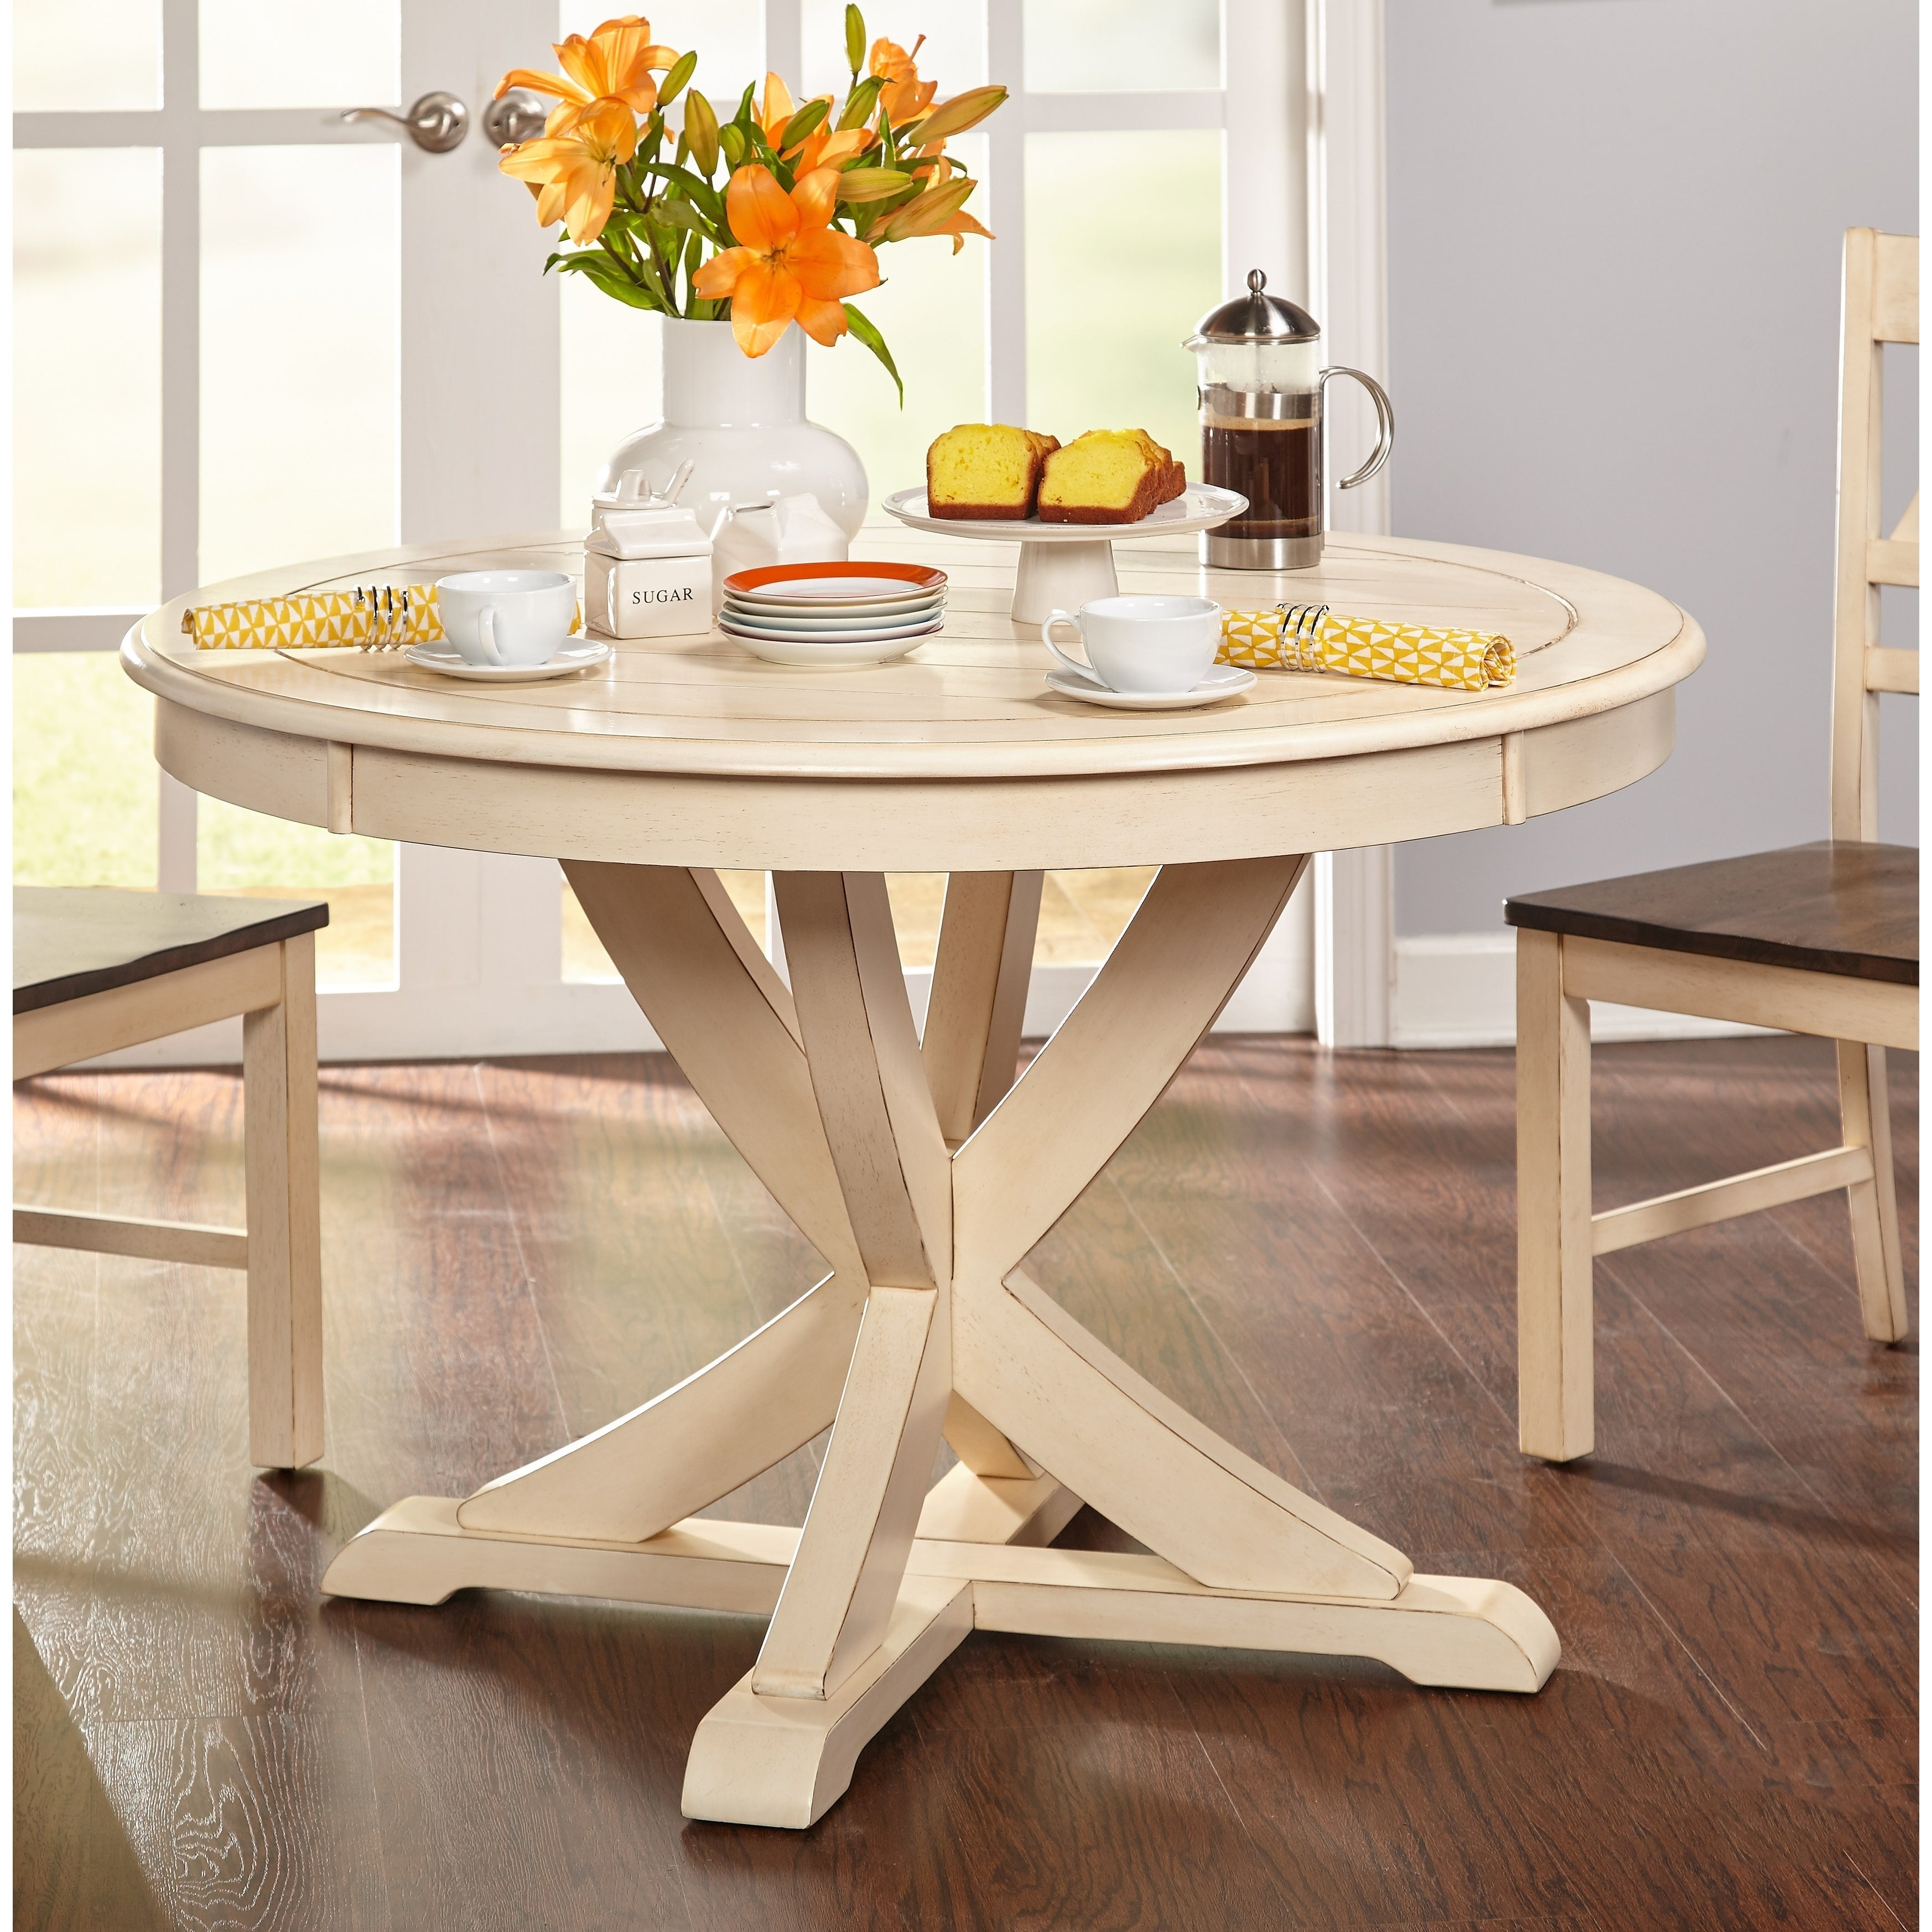 Simple Living Alexa Round Antique White Pedestal Dining Table ...